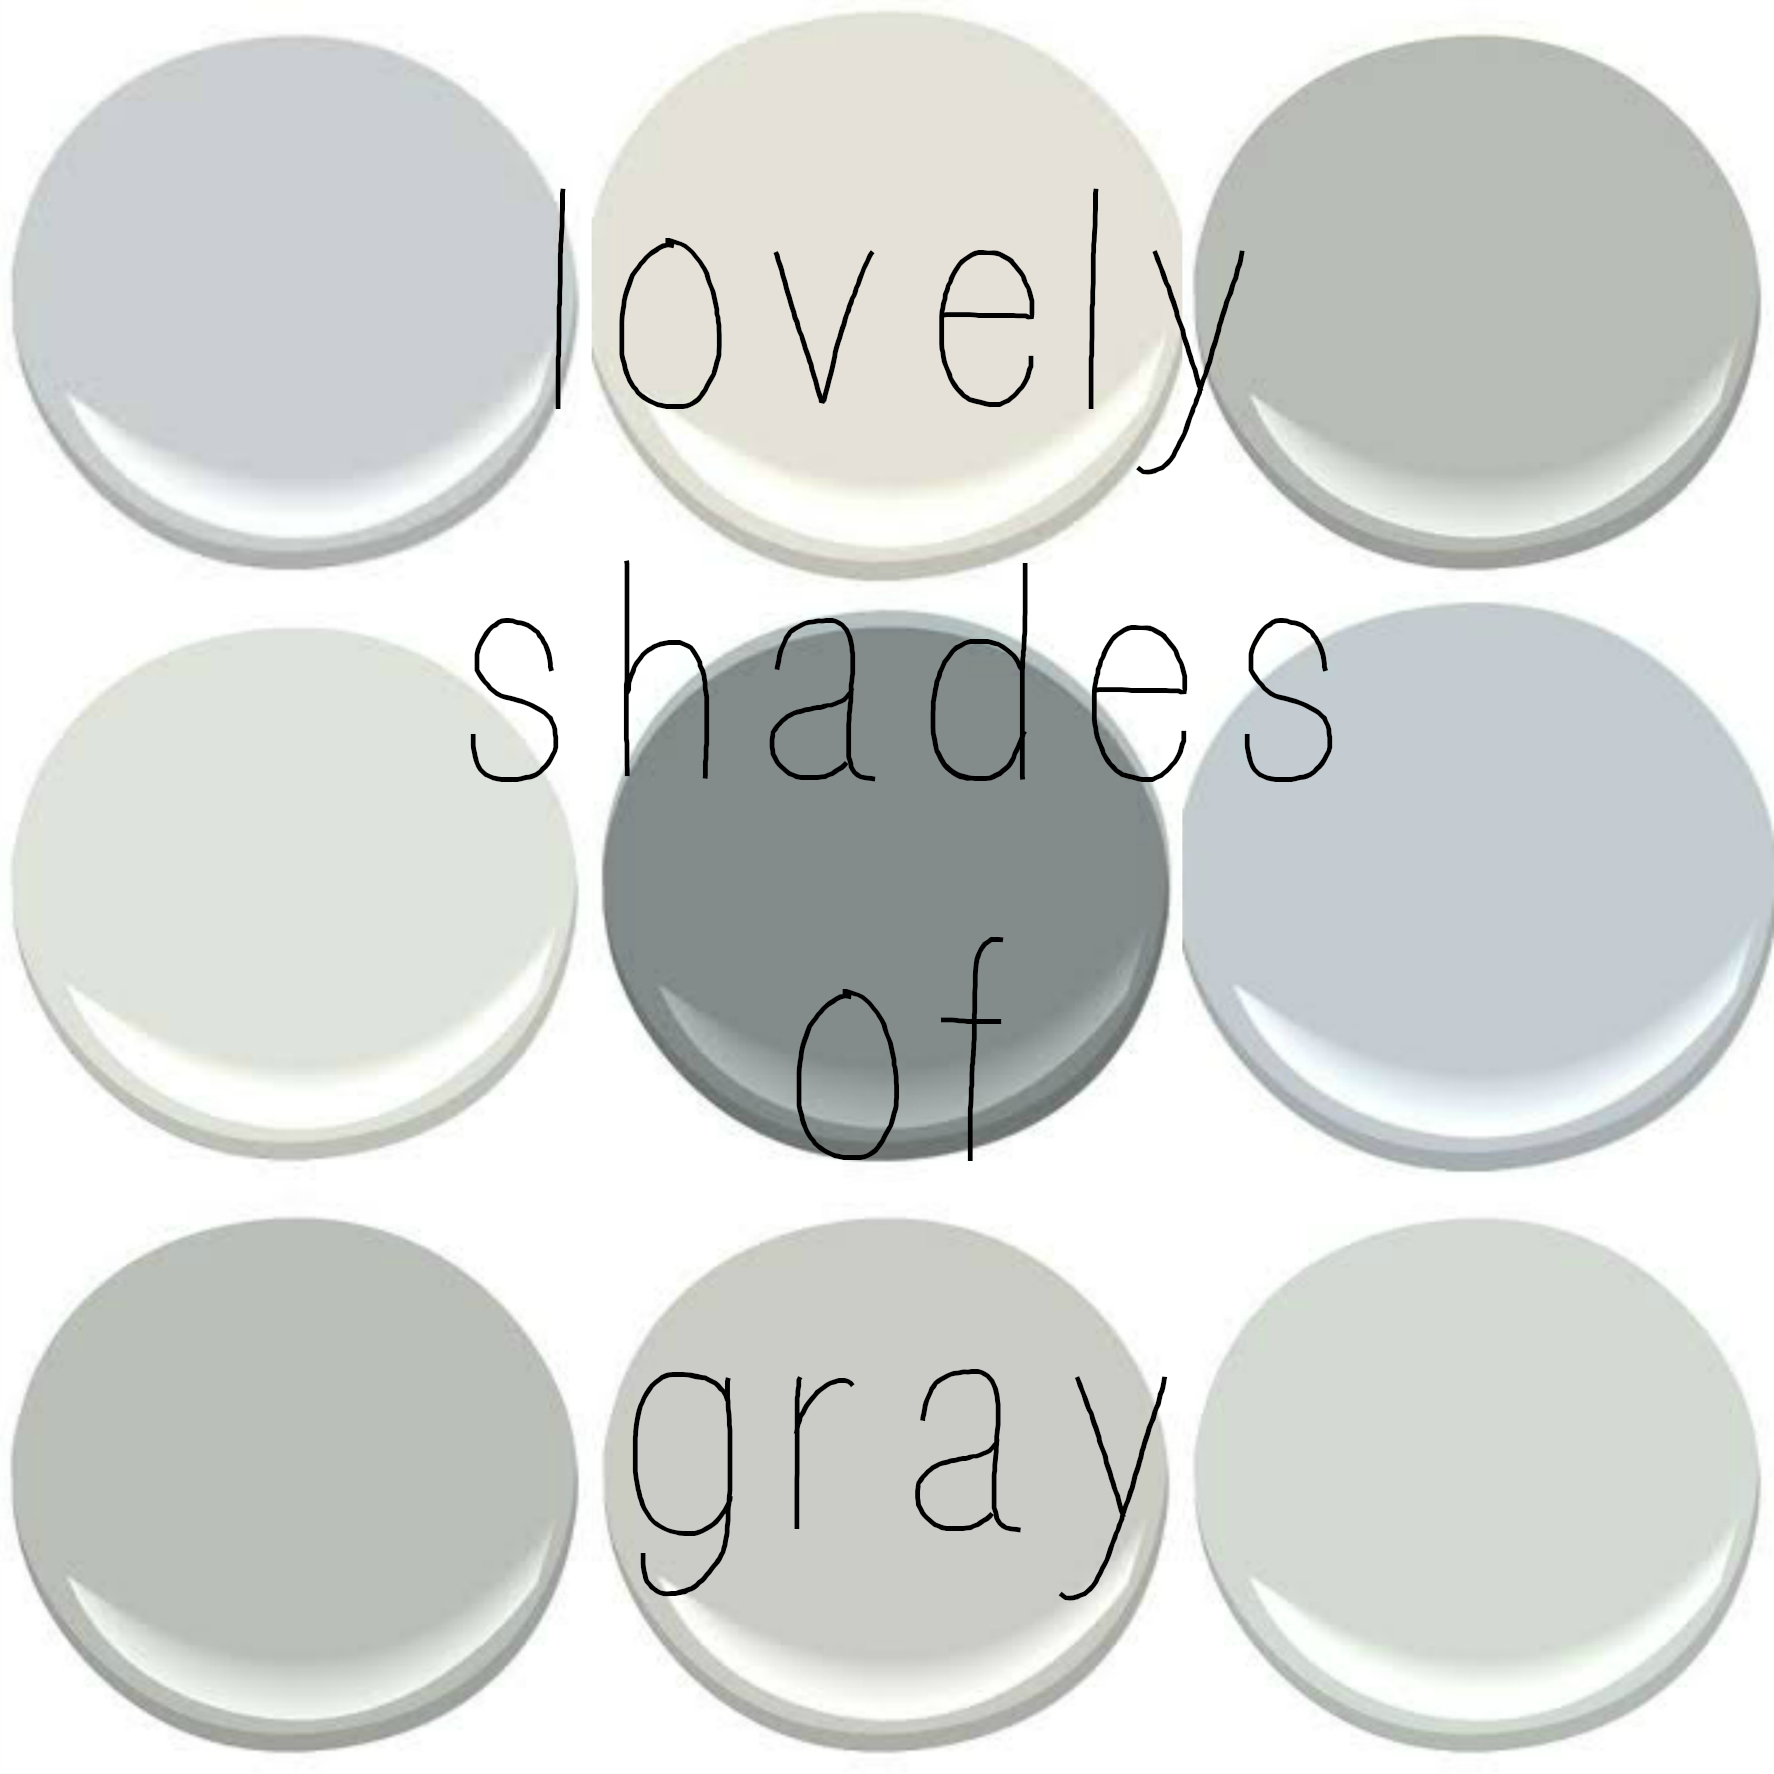 Gray Shades favorite shades of gray –